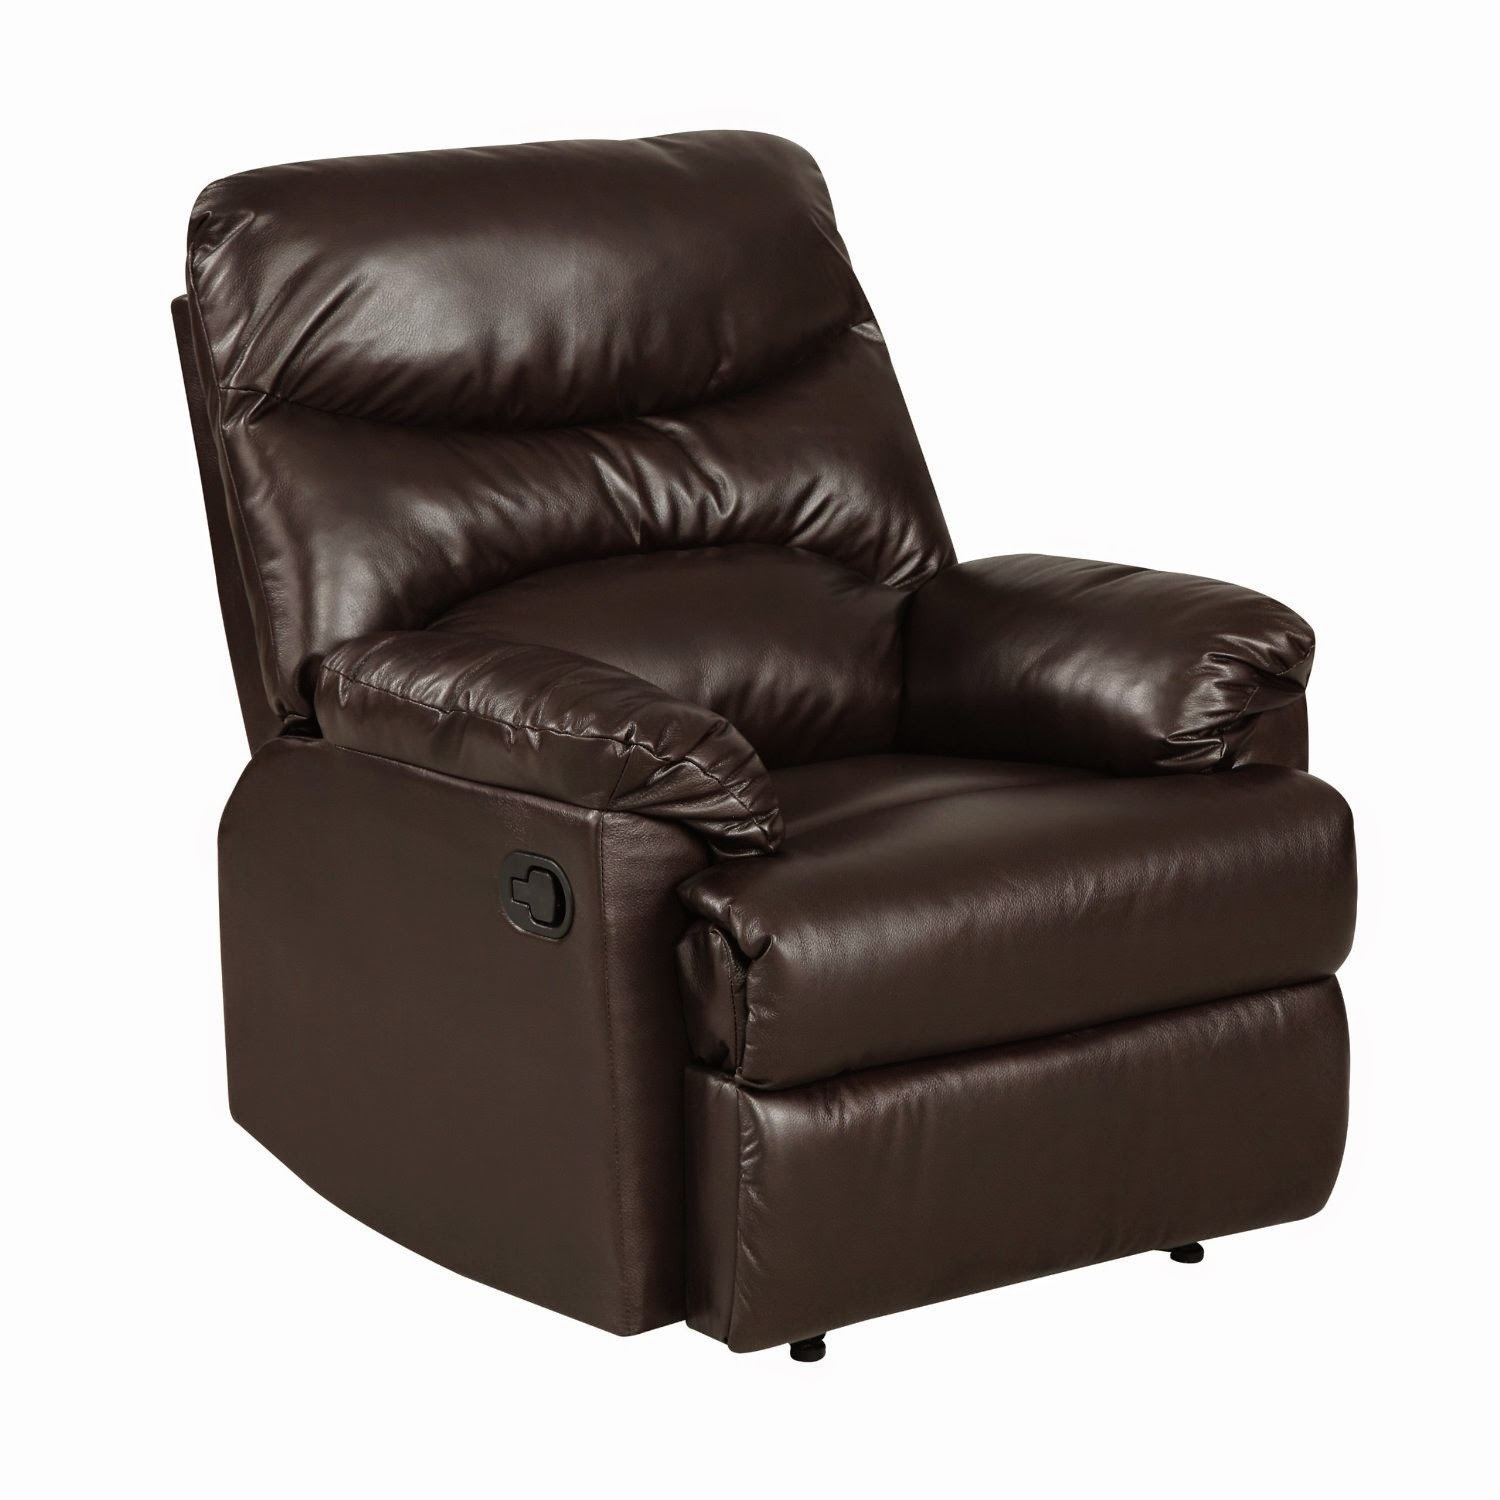 Reclining Sofas For Sale Cheap: Small Reclining Sofas